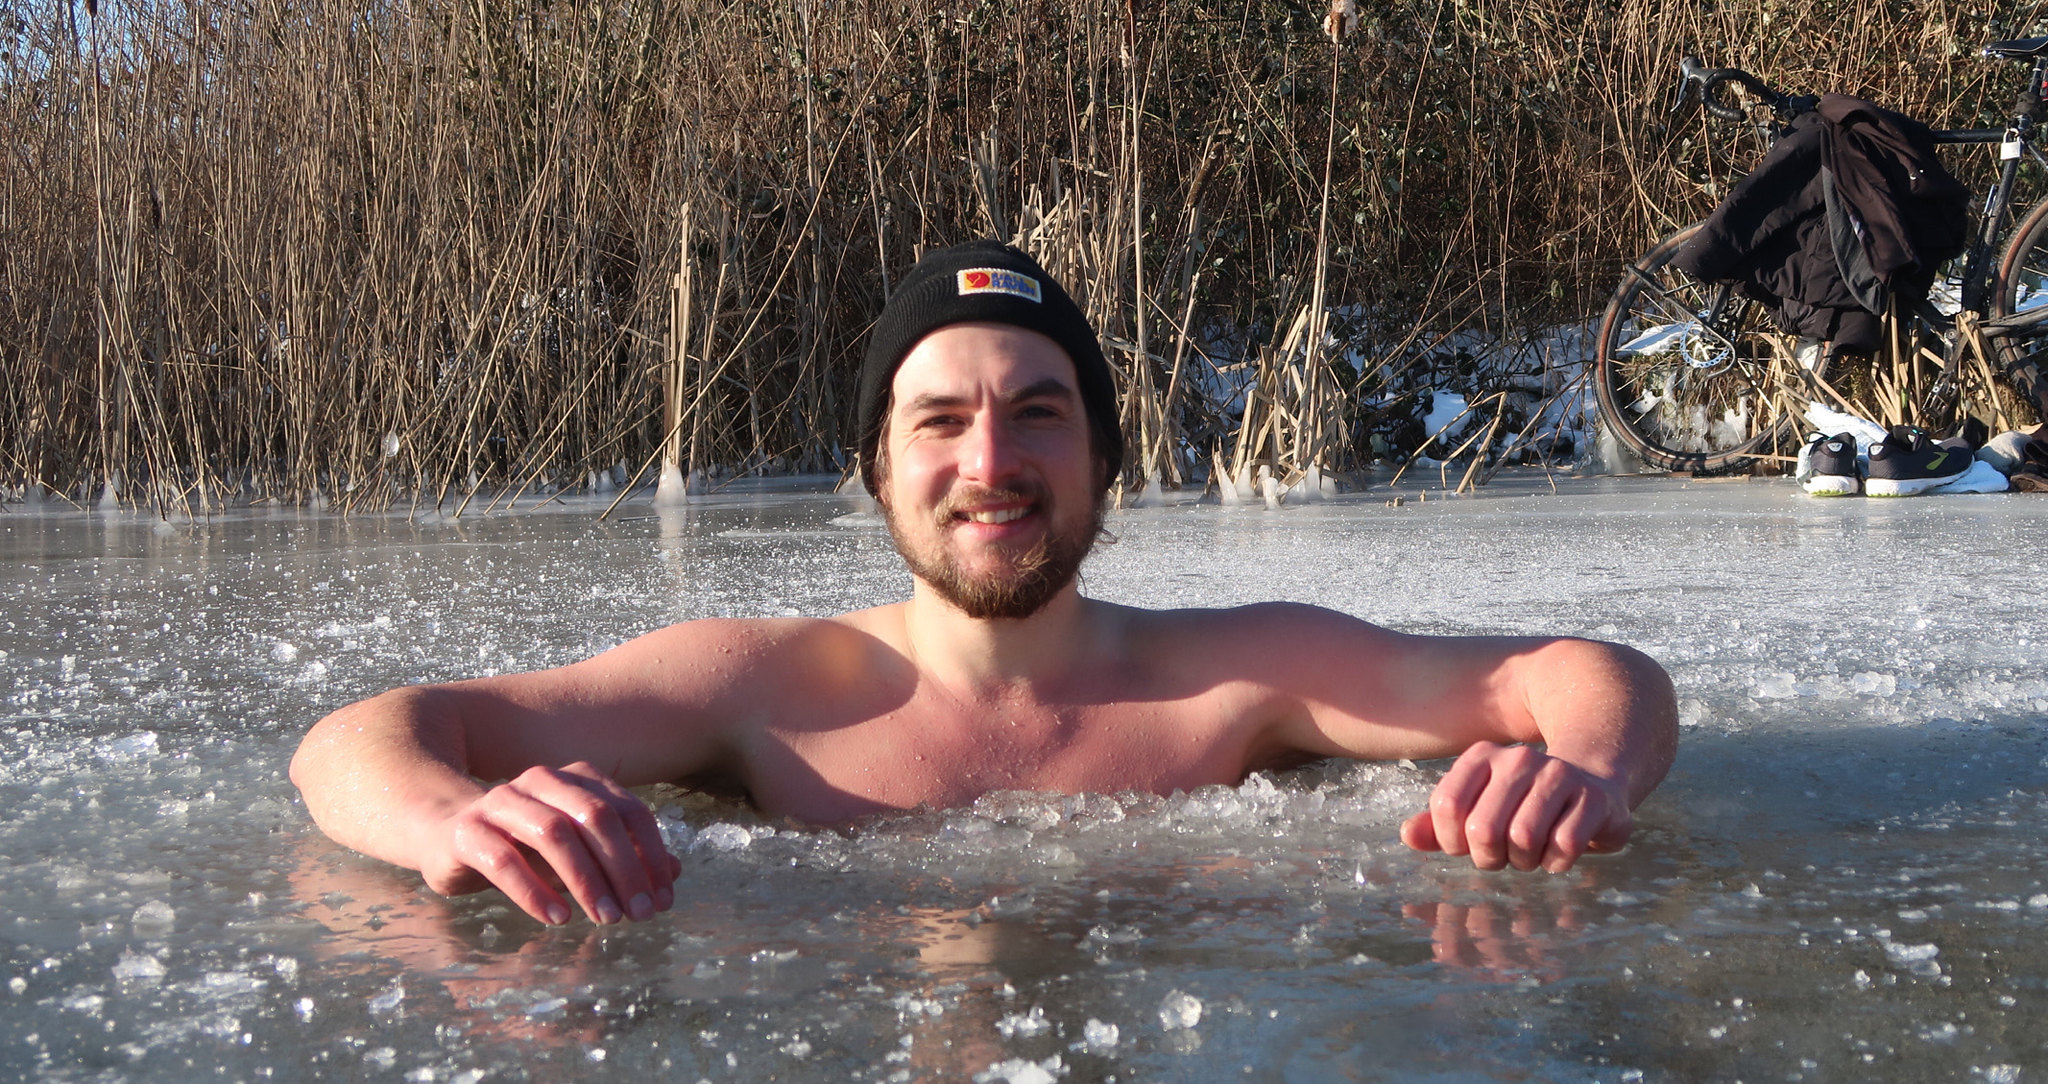 Dip in the ice